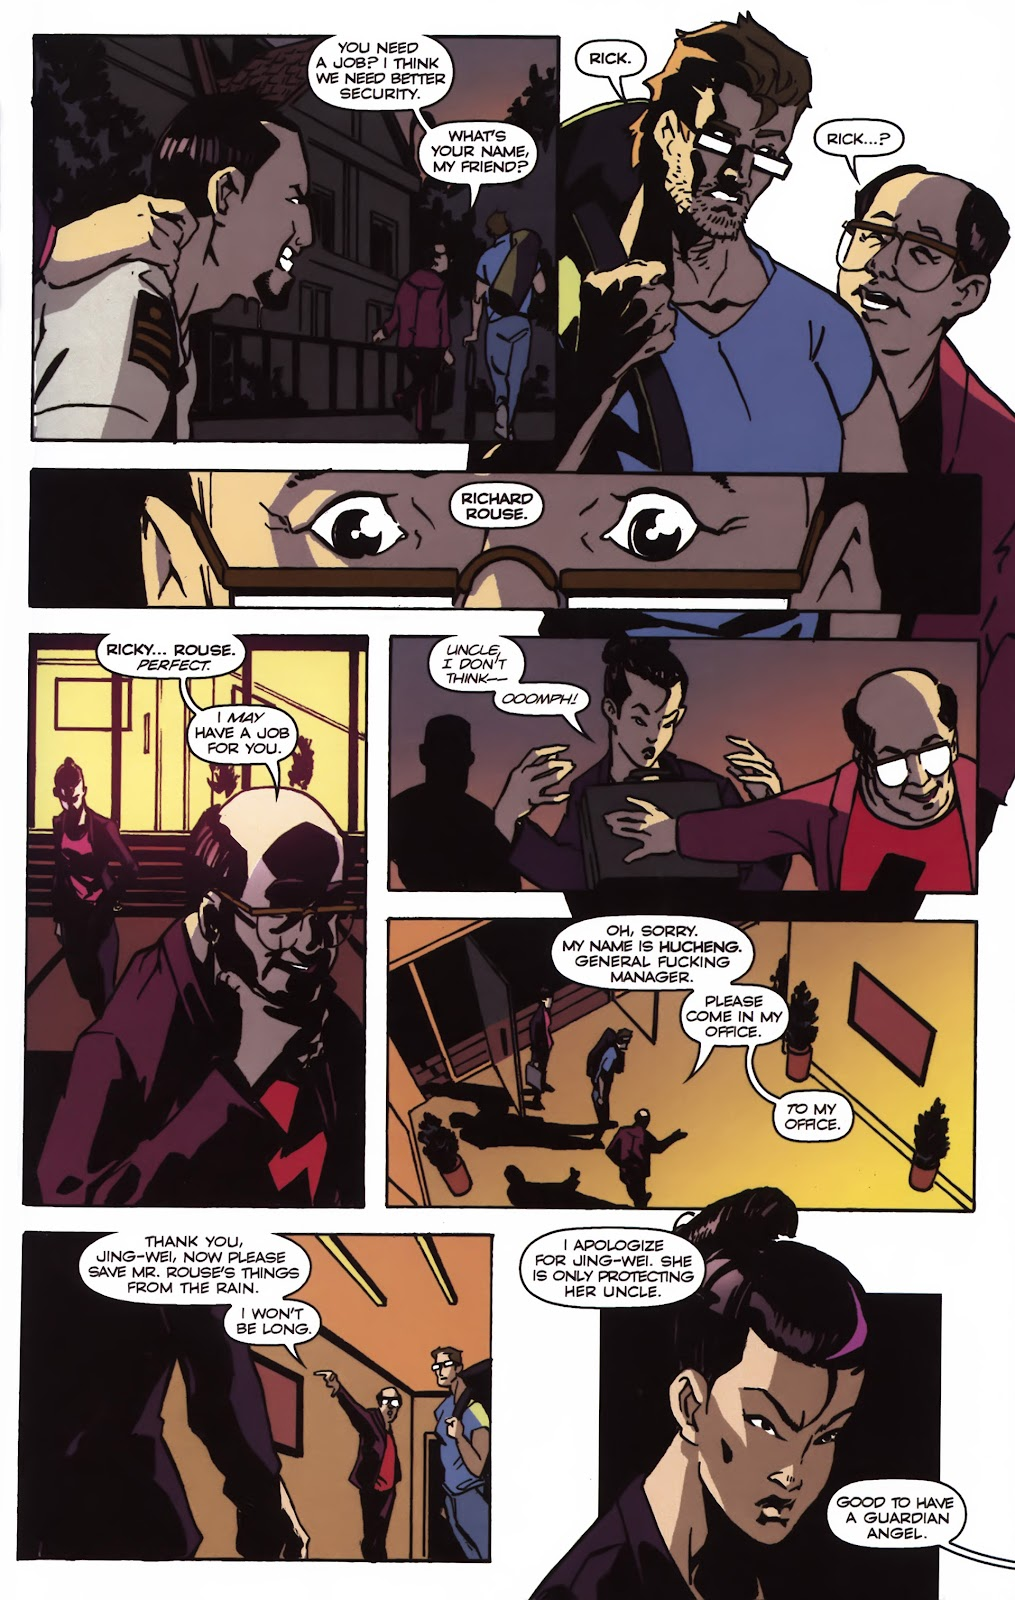 Read online Ricky Rouse Has A Gun comic -  Issue # TPB (Part 1) - 32